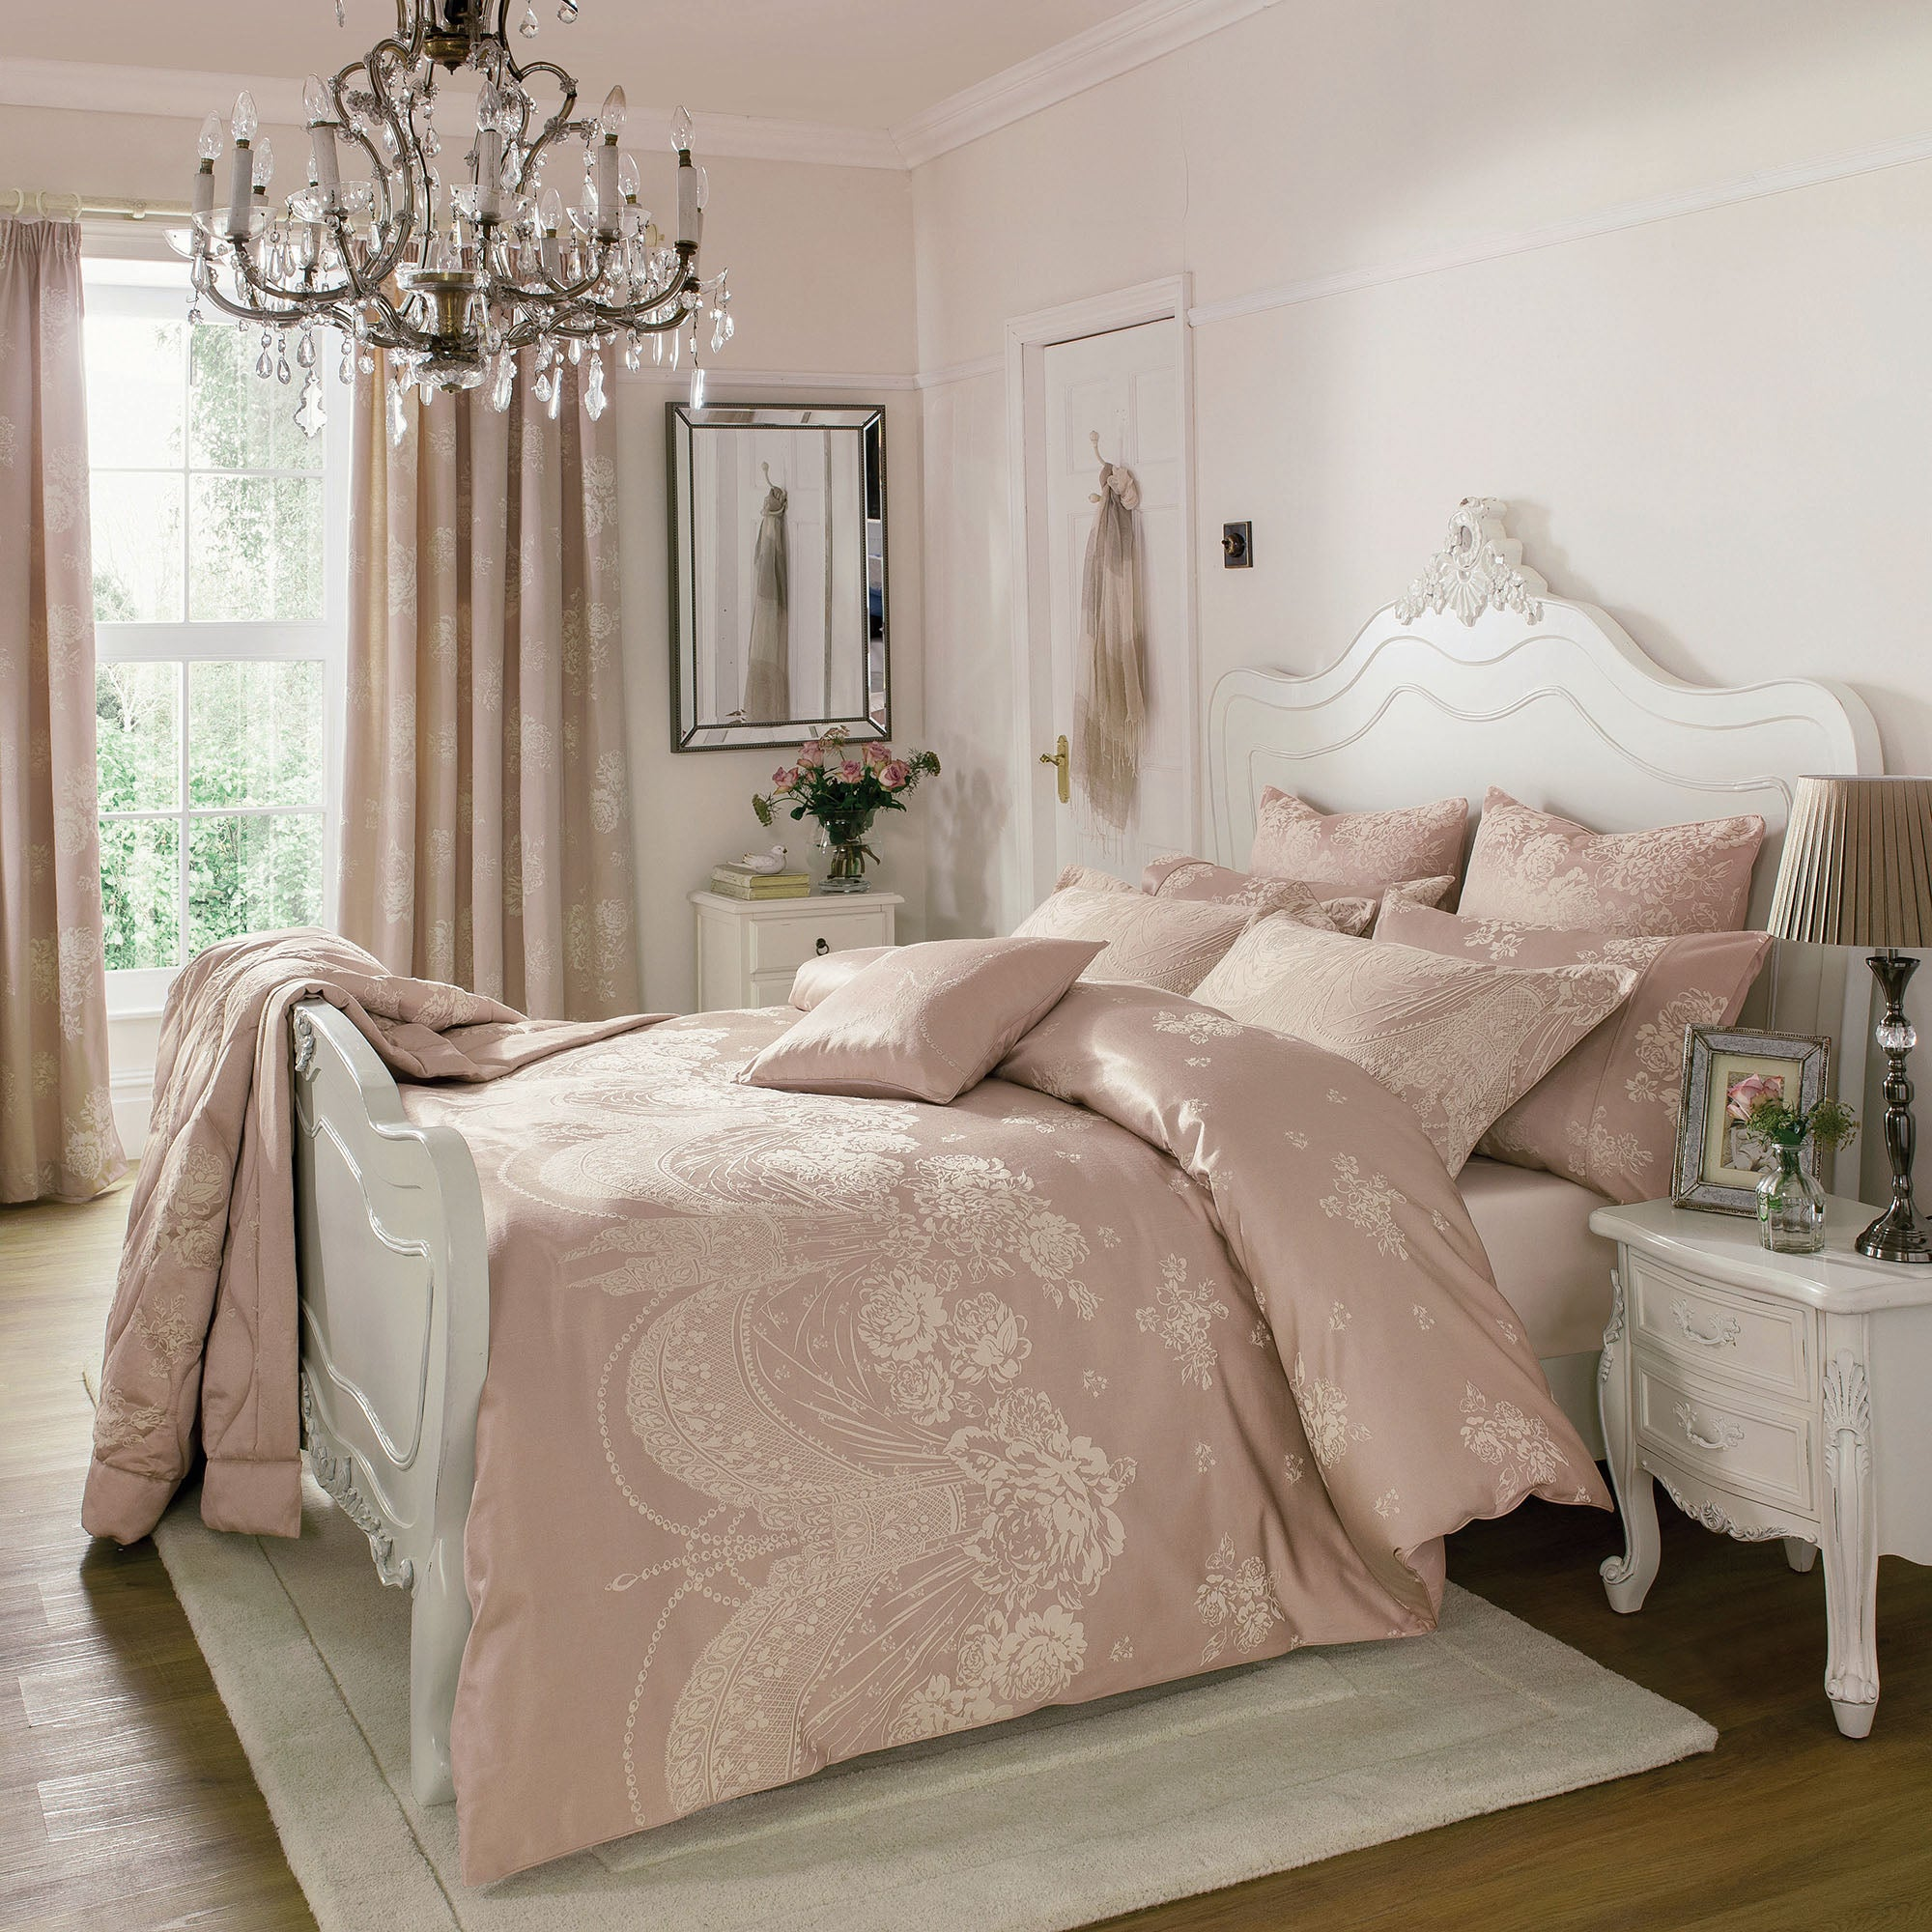 Buy Cheap Pink Bed Cover Compare Home Textiles Prices